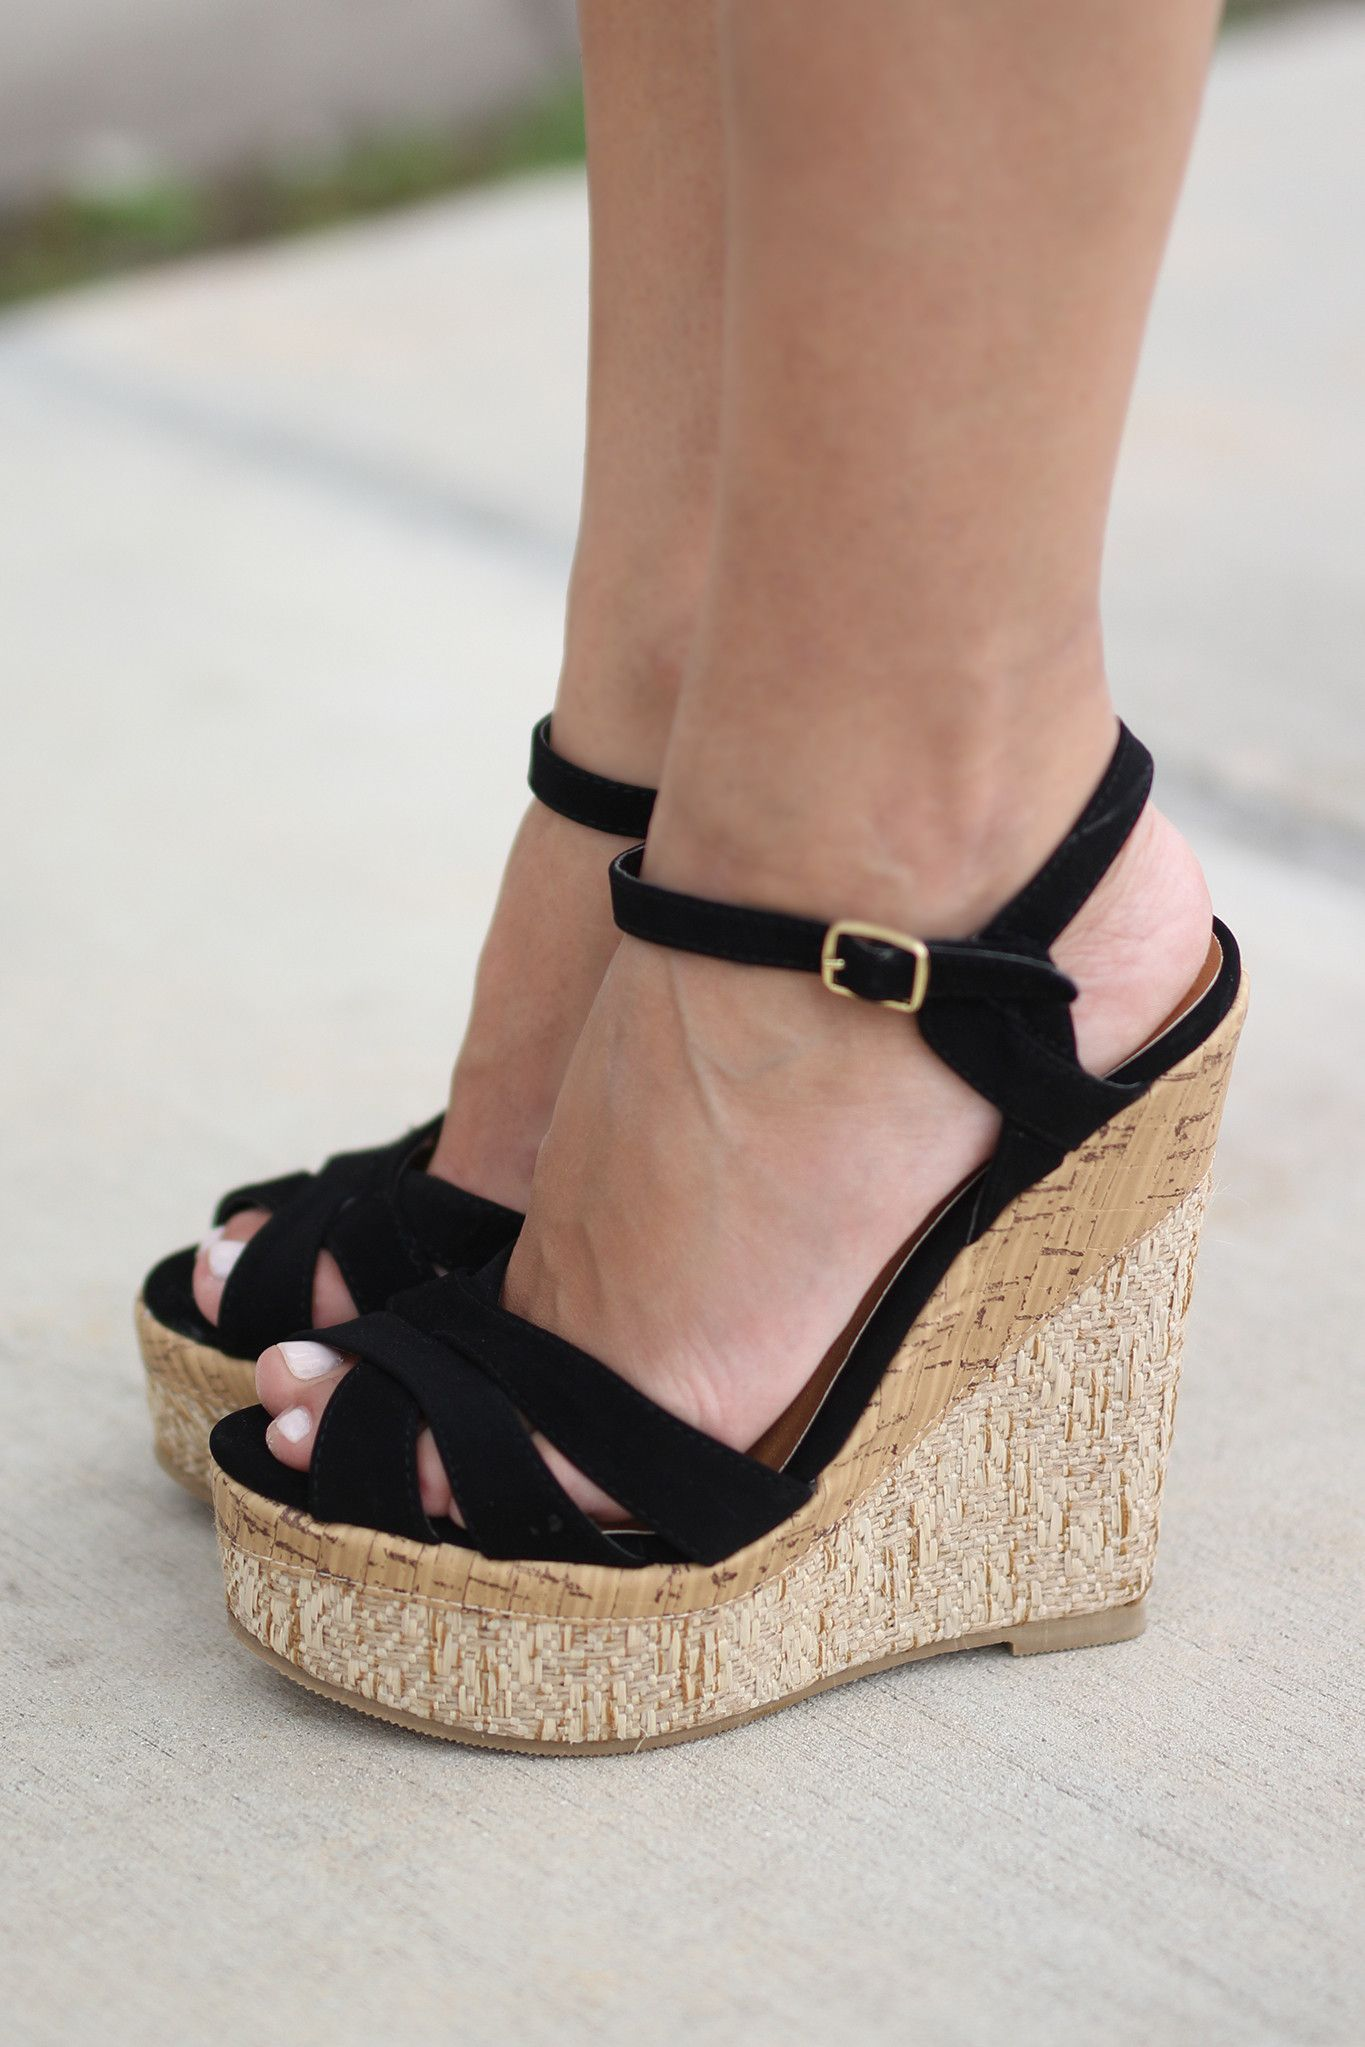 d531d647f0e4 Summer means more wedges! The perfect summer alternative to heels!